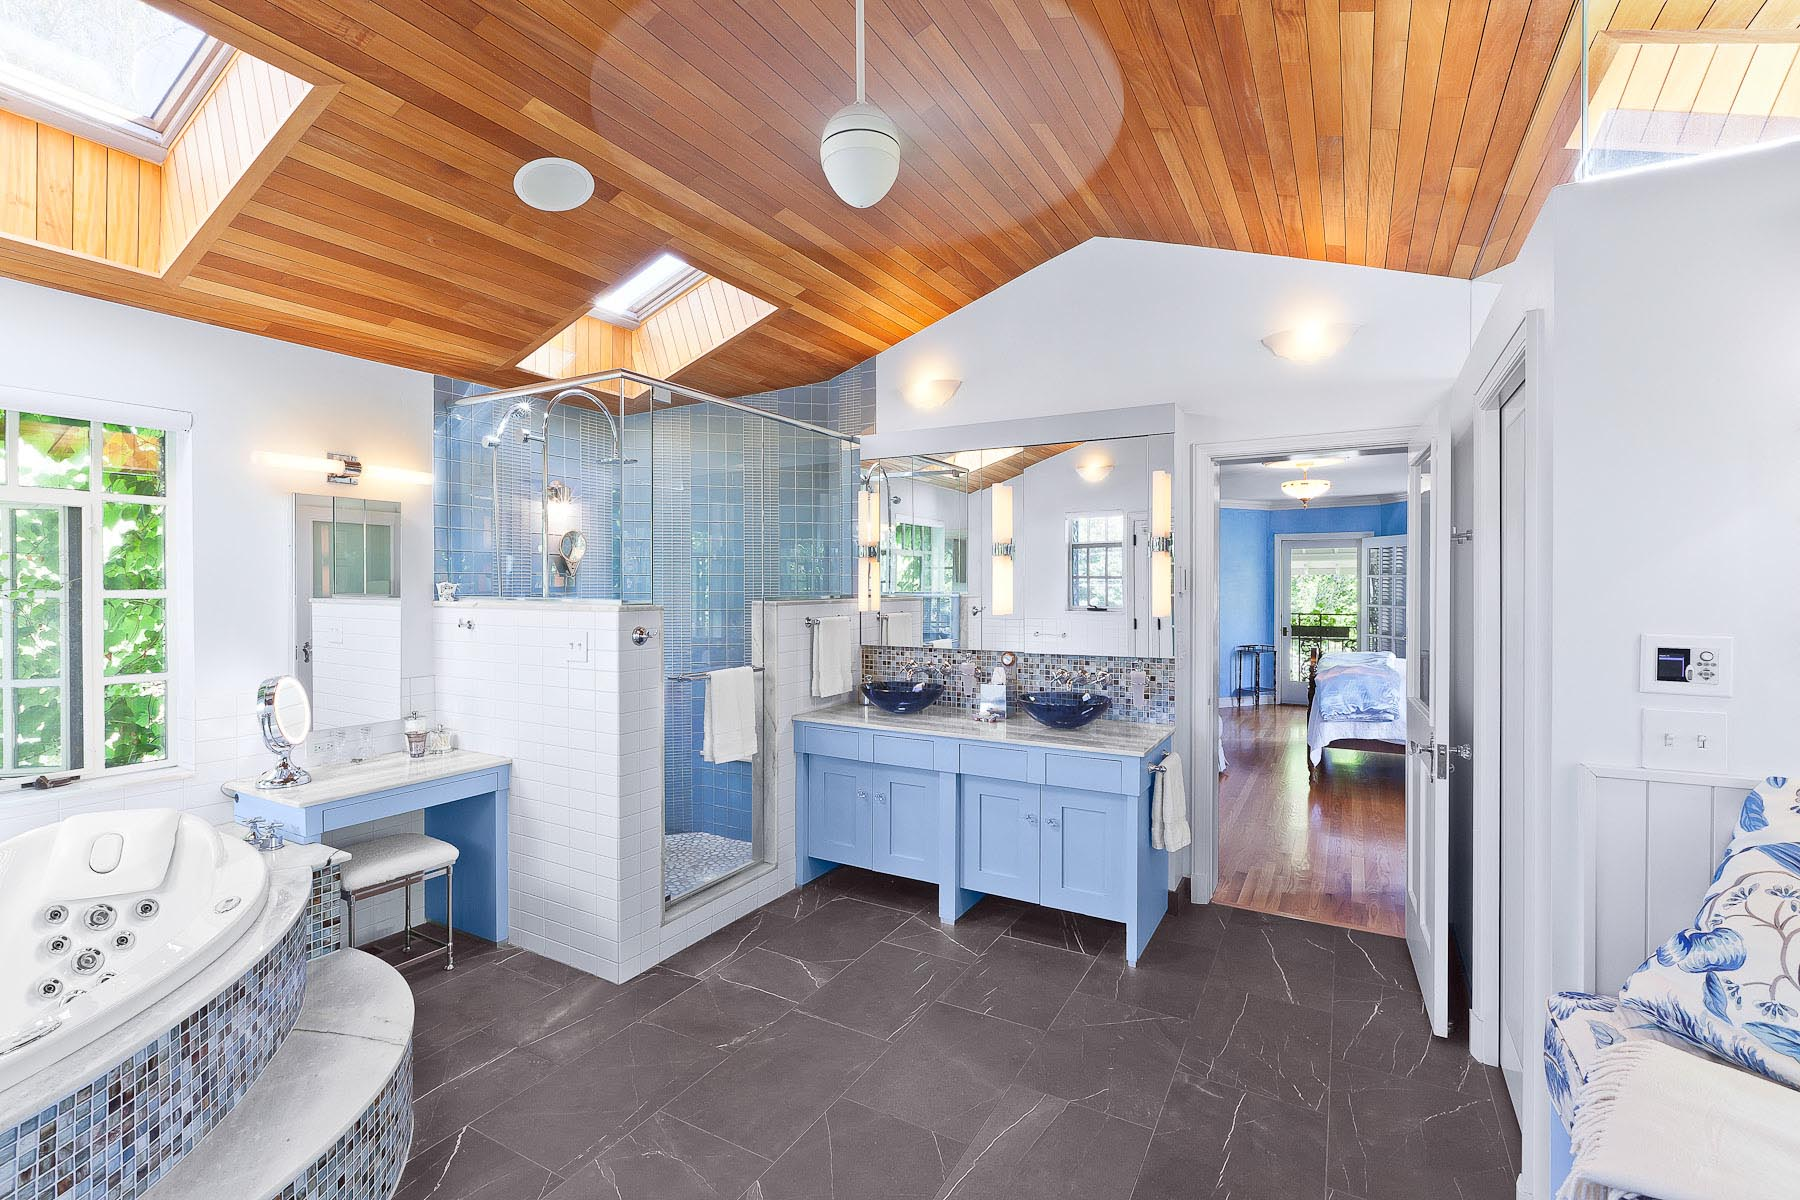 Fresh remodel of a master bathroom in a complete renovation by DAJ Design in Denver, CO featuring blue cabinetry and natural wood ceiling.